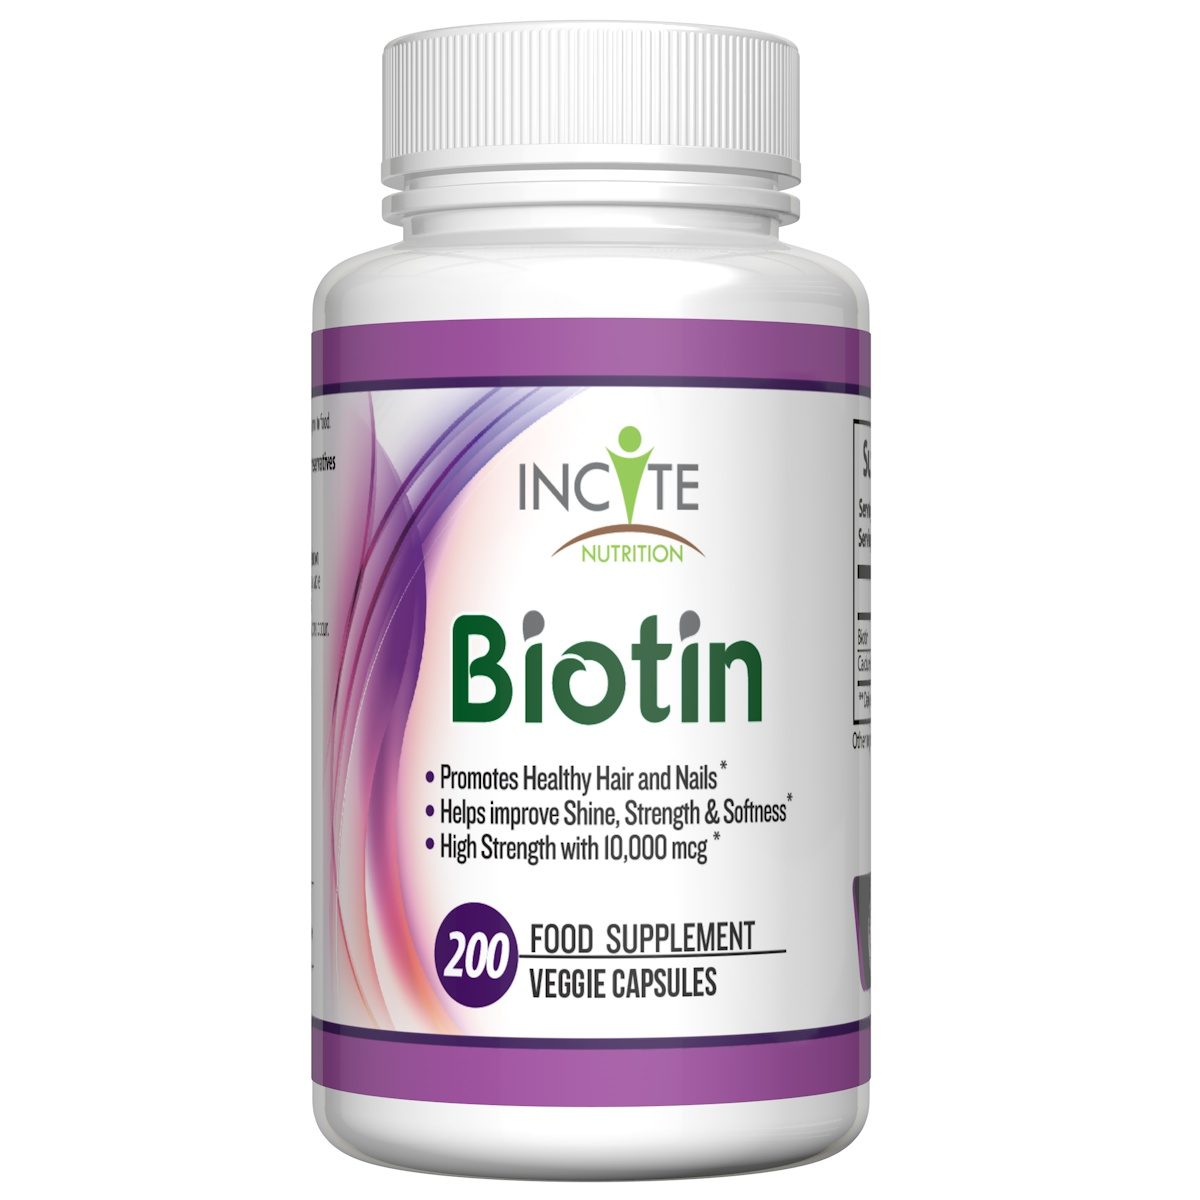 Biotin Hair & Nail Vitamin by #incitenutrition